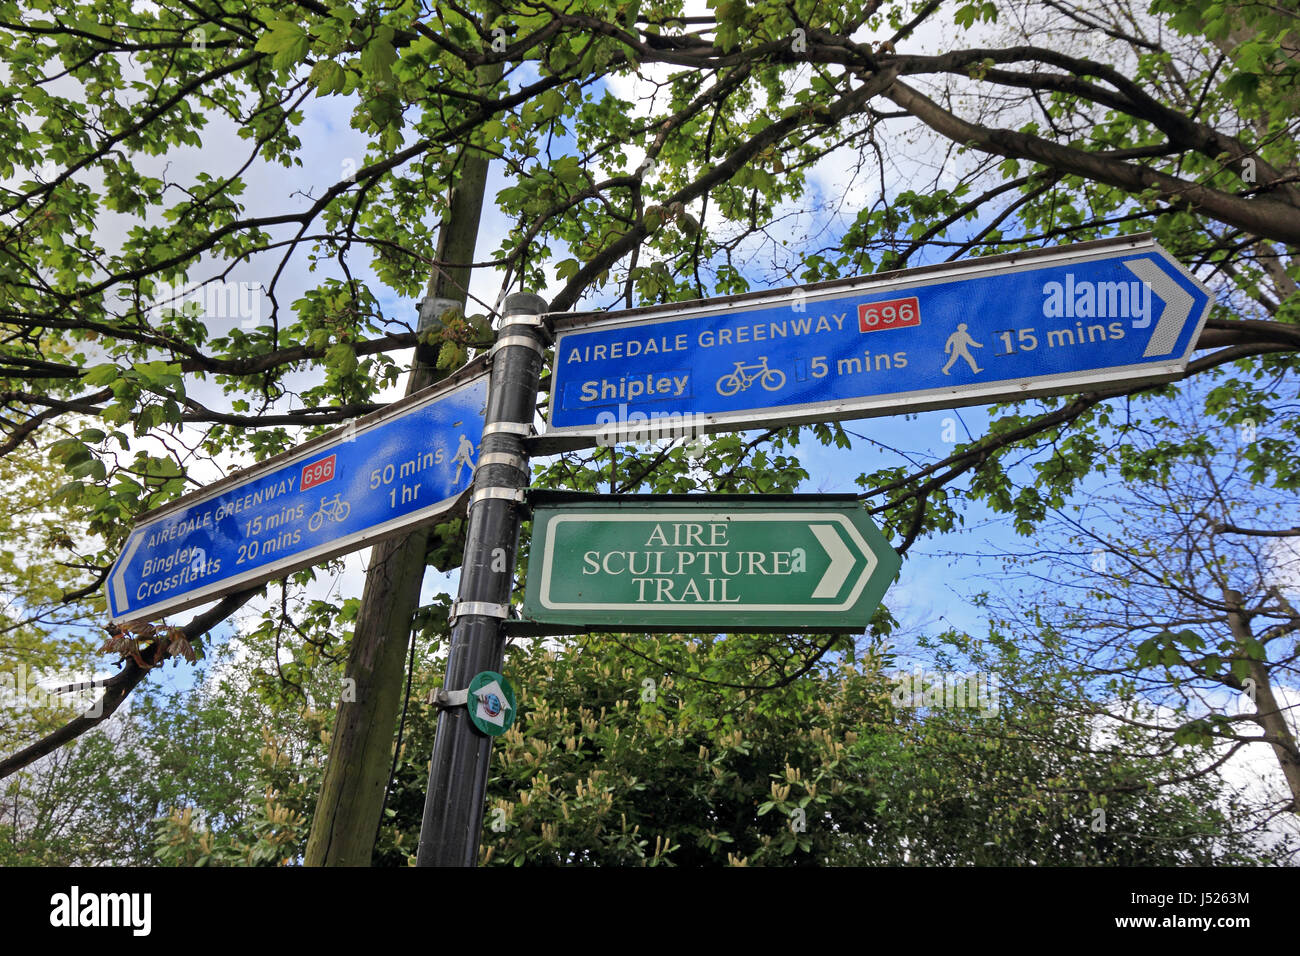 Signpost on Airedale Greenway along towpath of Leeds & Liverpool Canal, Saltaire, Bradford - Stock Image